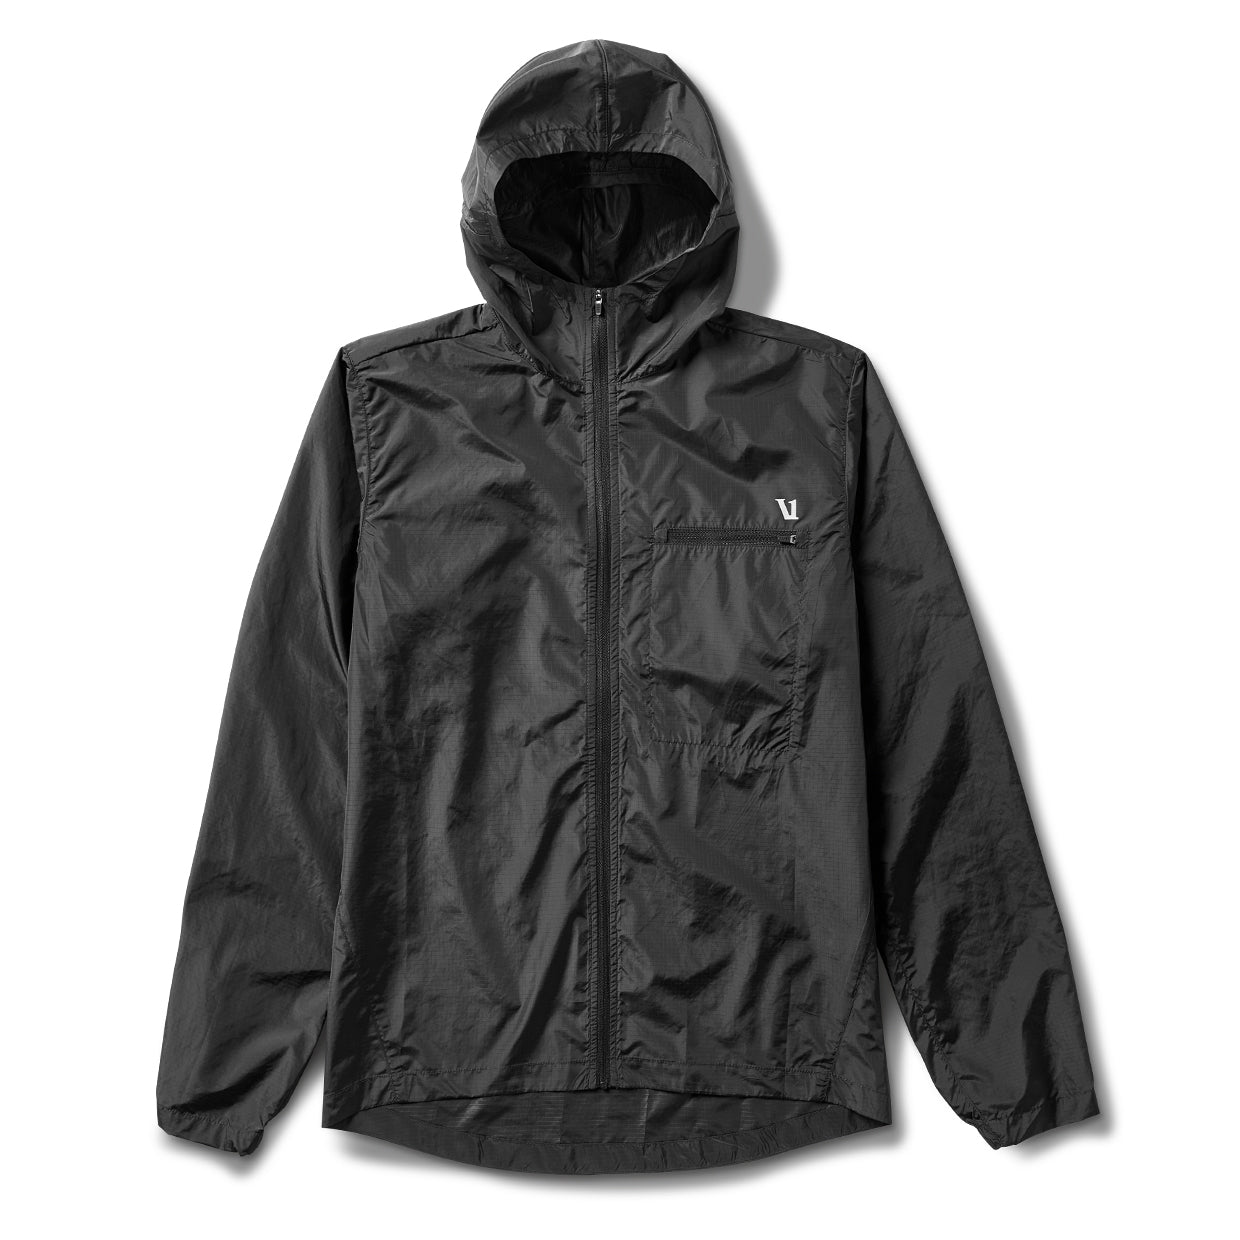 Daybreak Windbreaker | Black